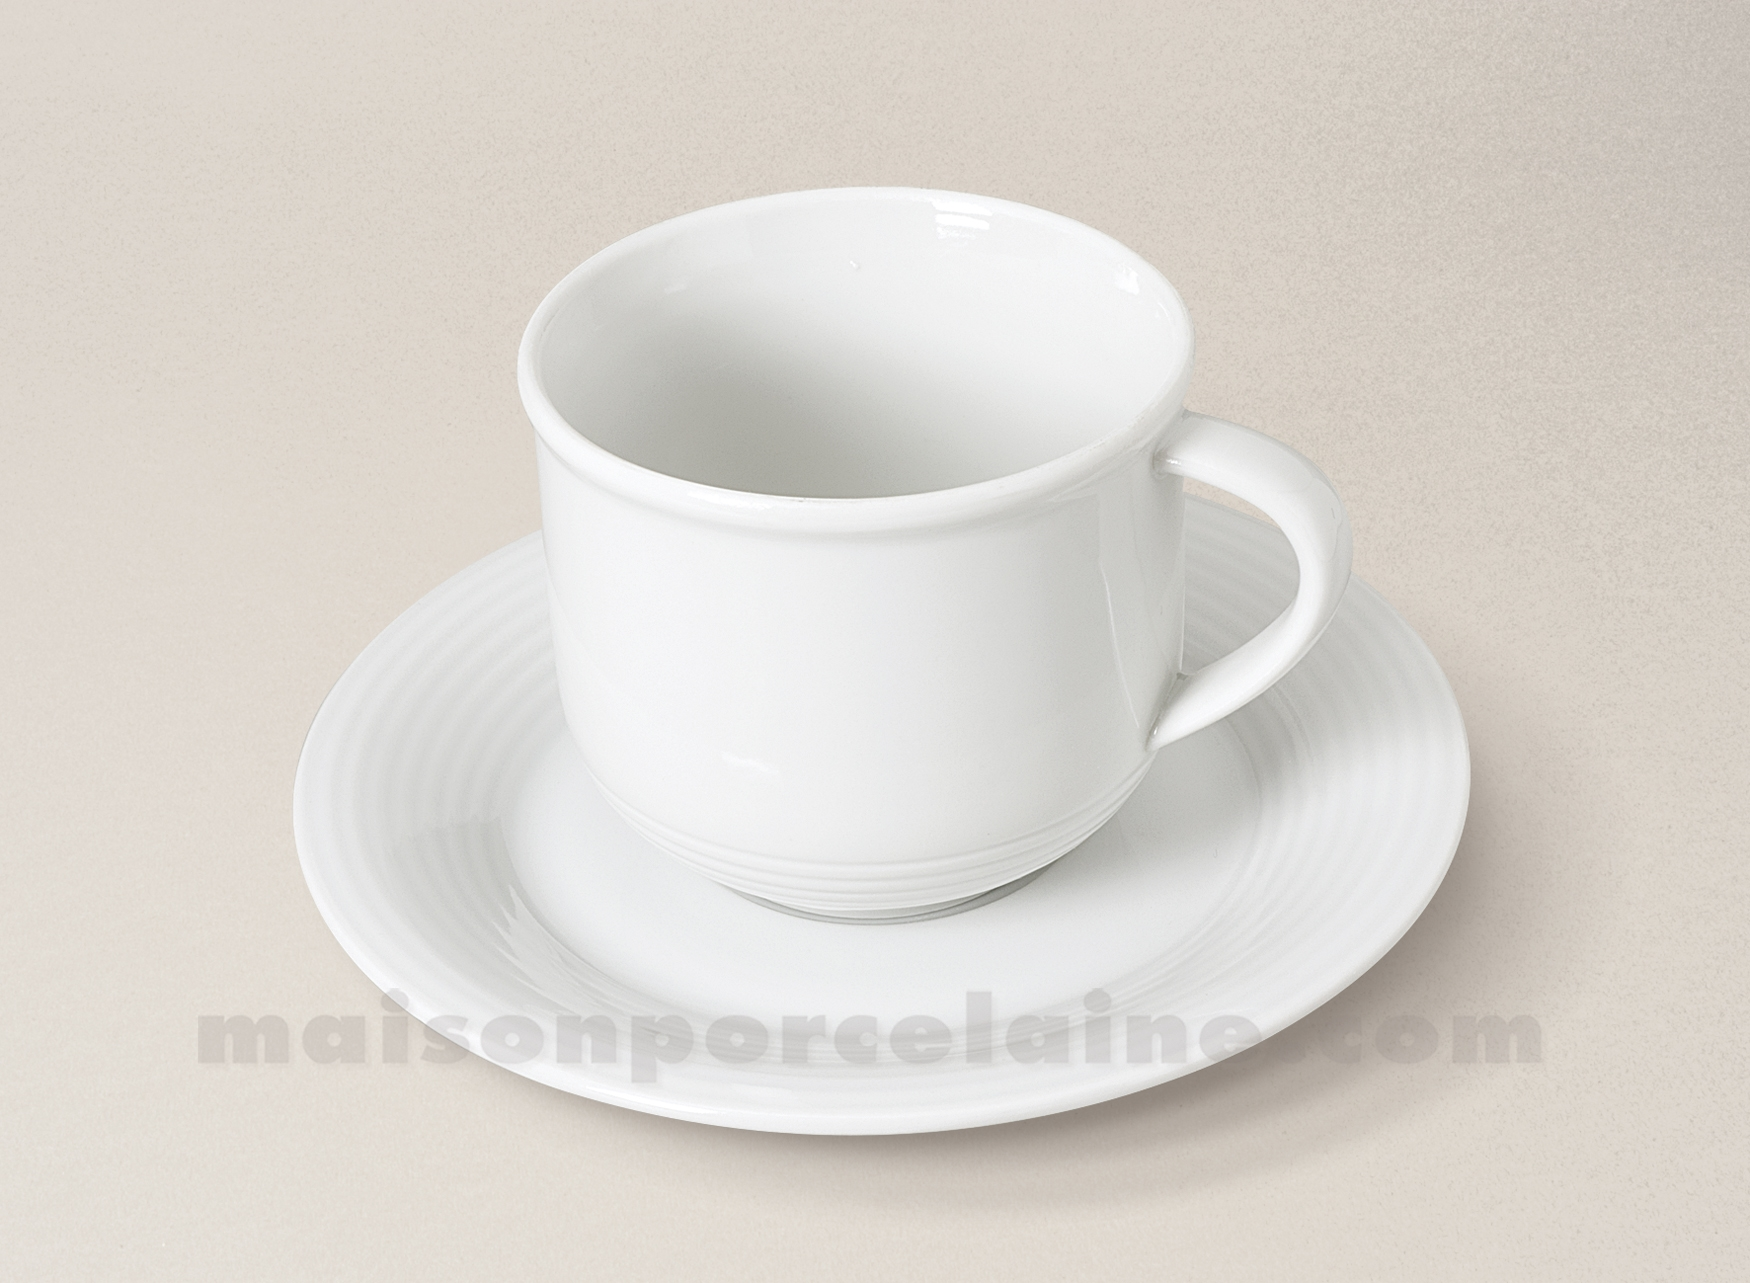 tasse cafe the soucoupe porcelaine blanche abba maison de la porcelaine. Black Bedroom Furniture Sets. Home Design Ideas